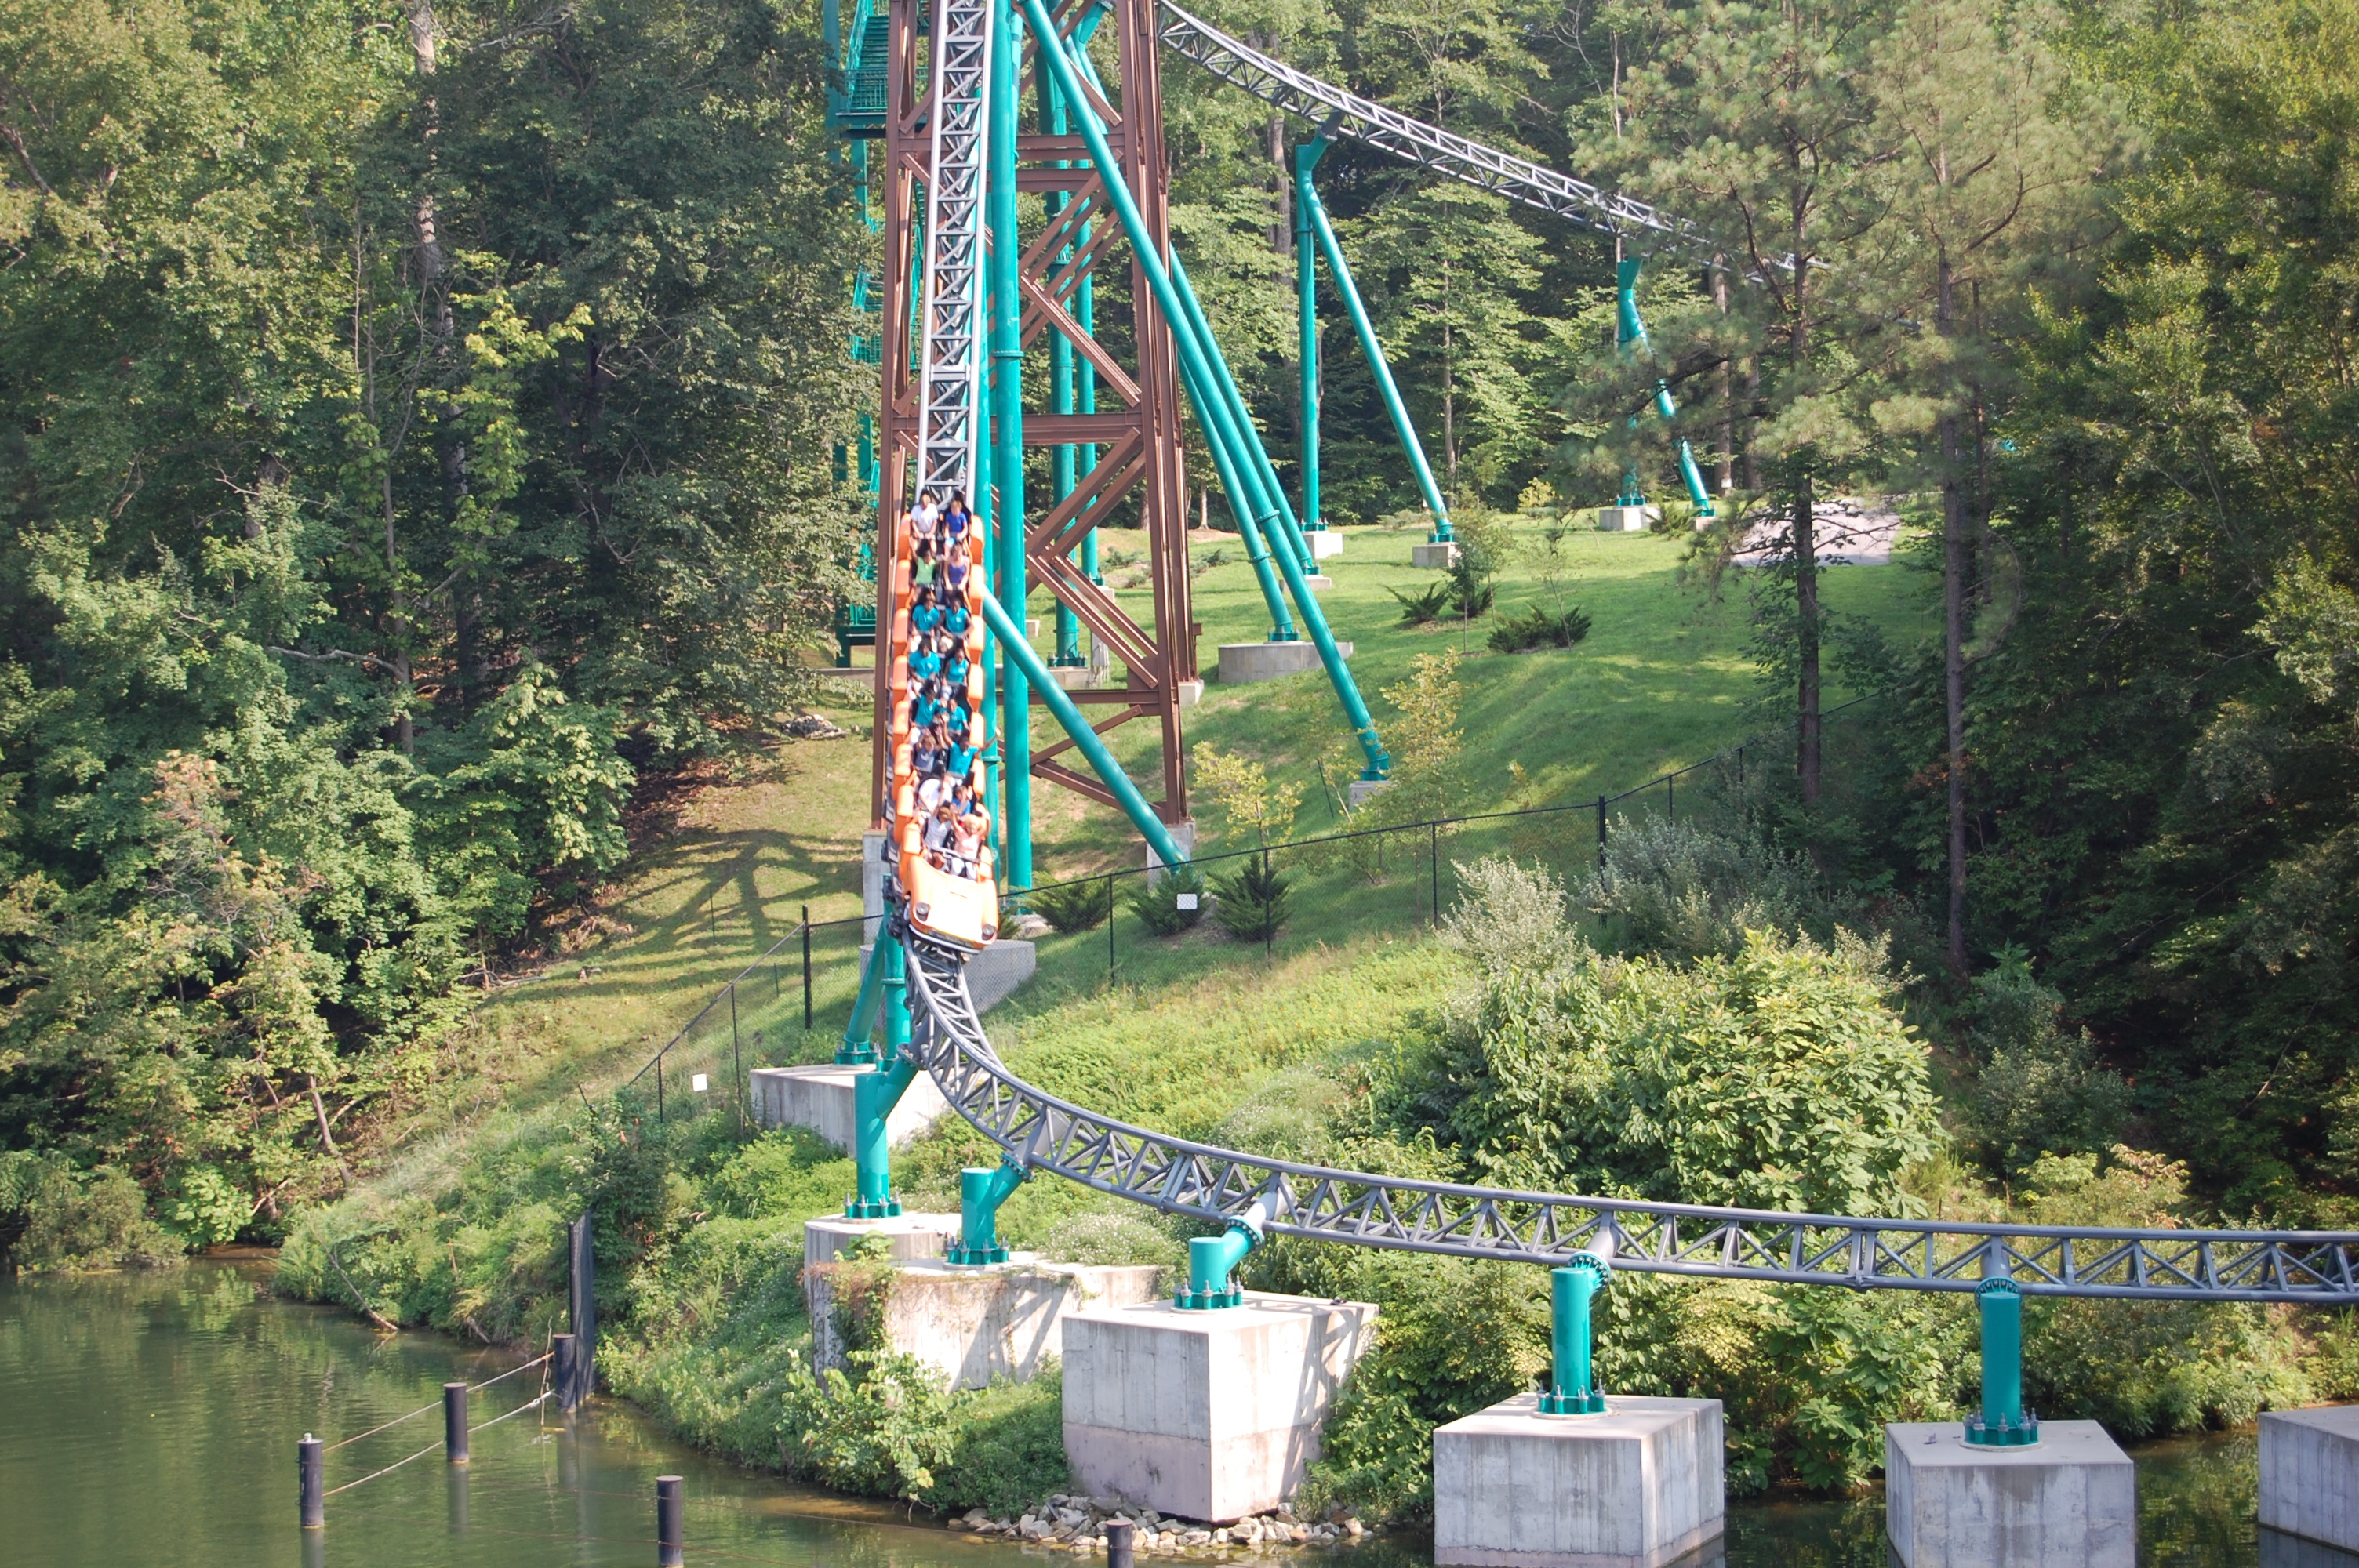 9 Tips to Visit Busch Gardens Williamsburg VA Ticket Discounts